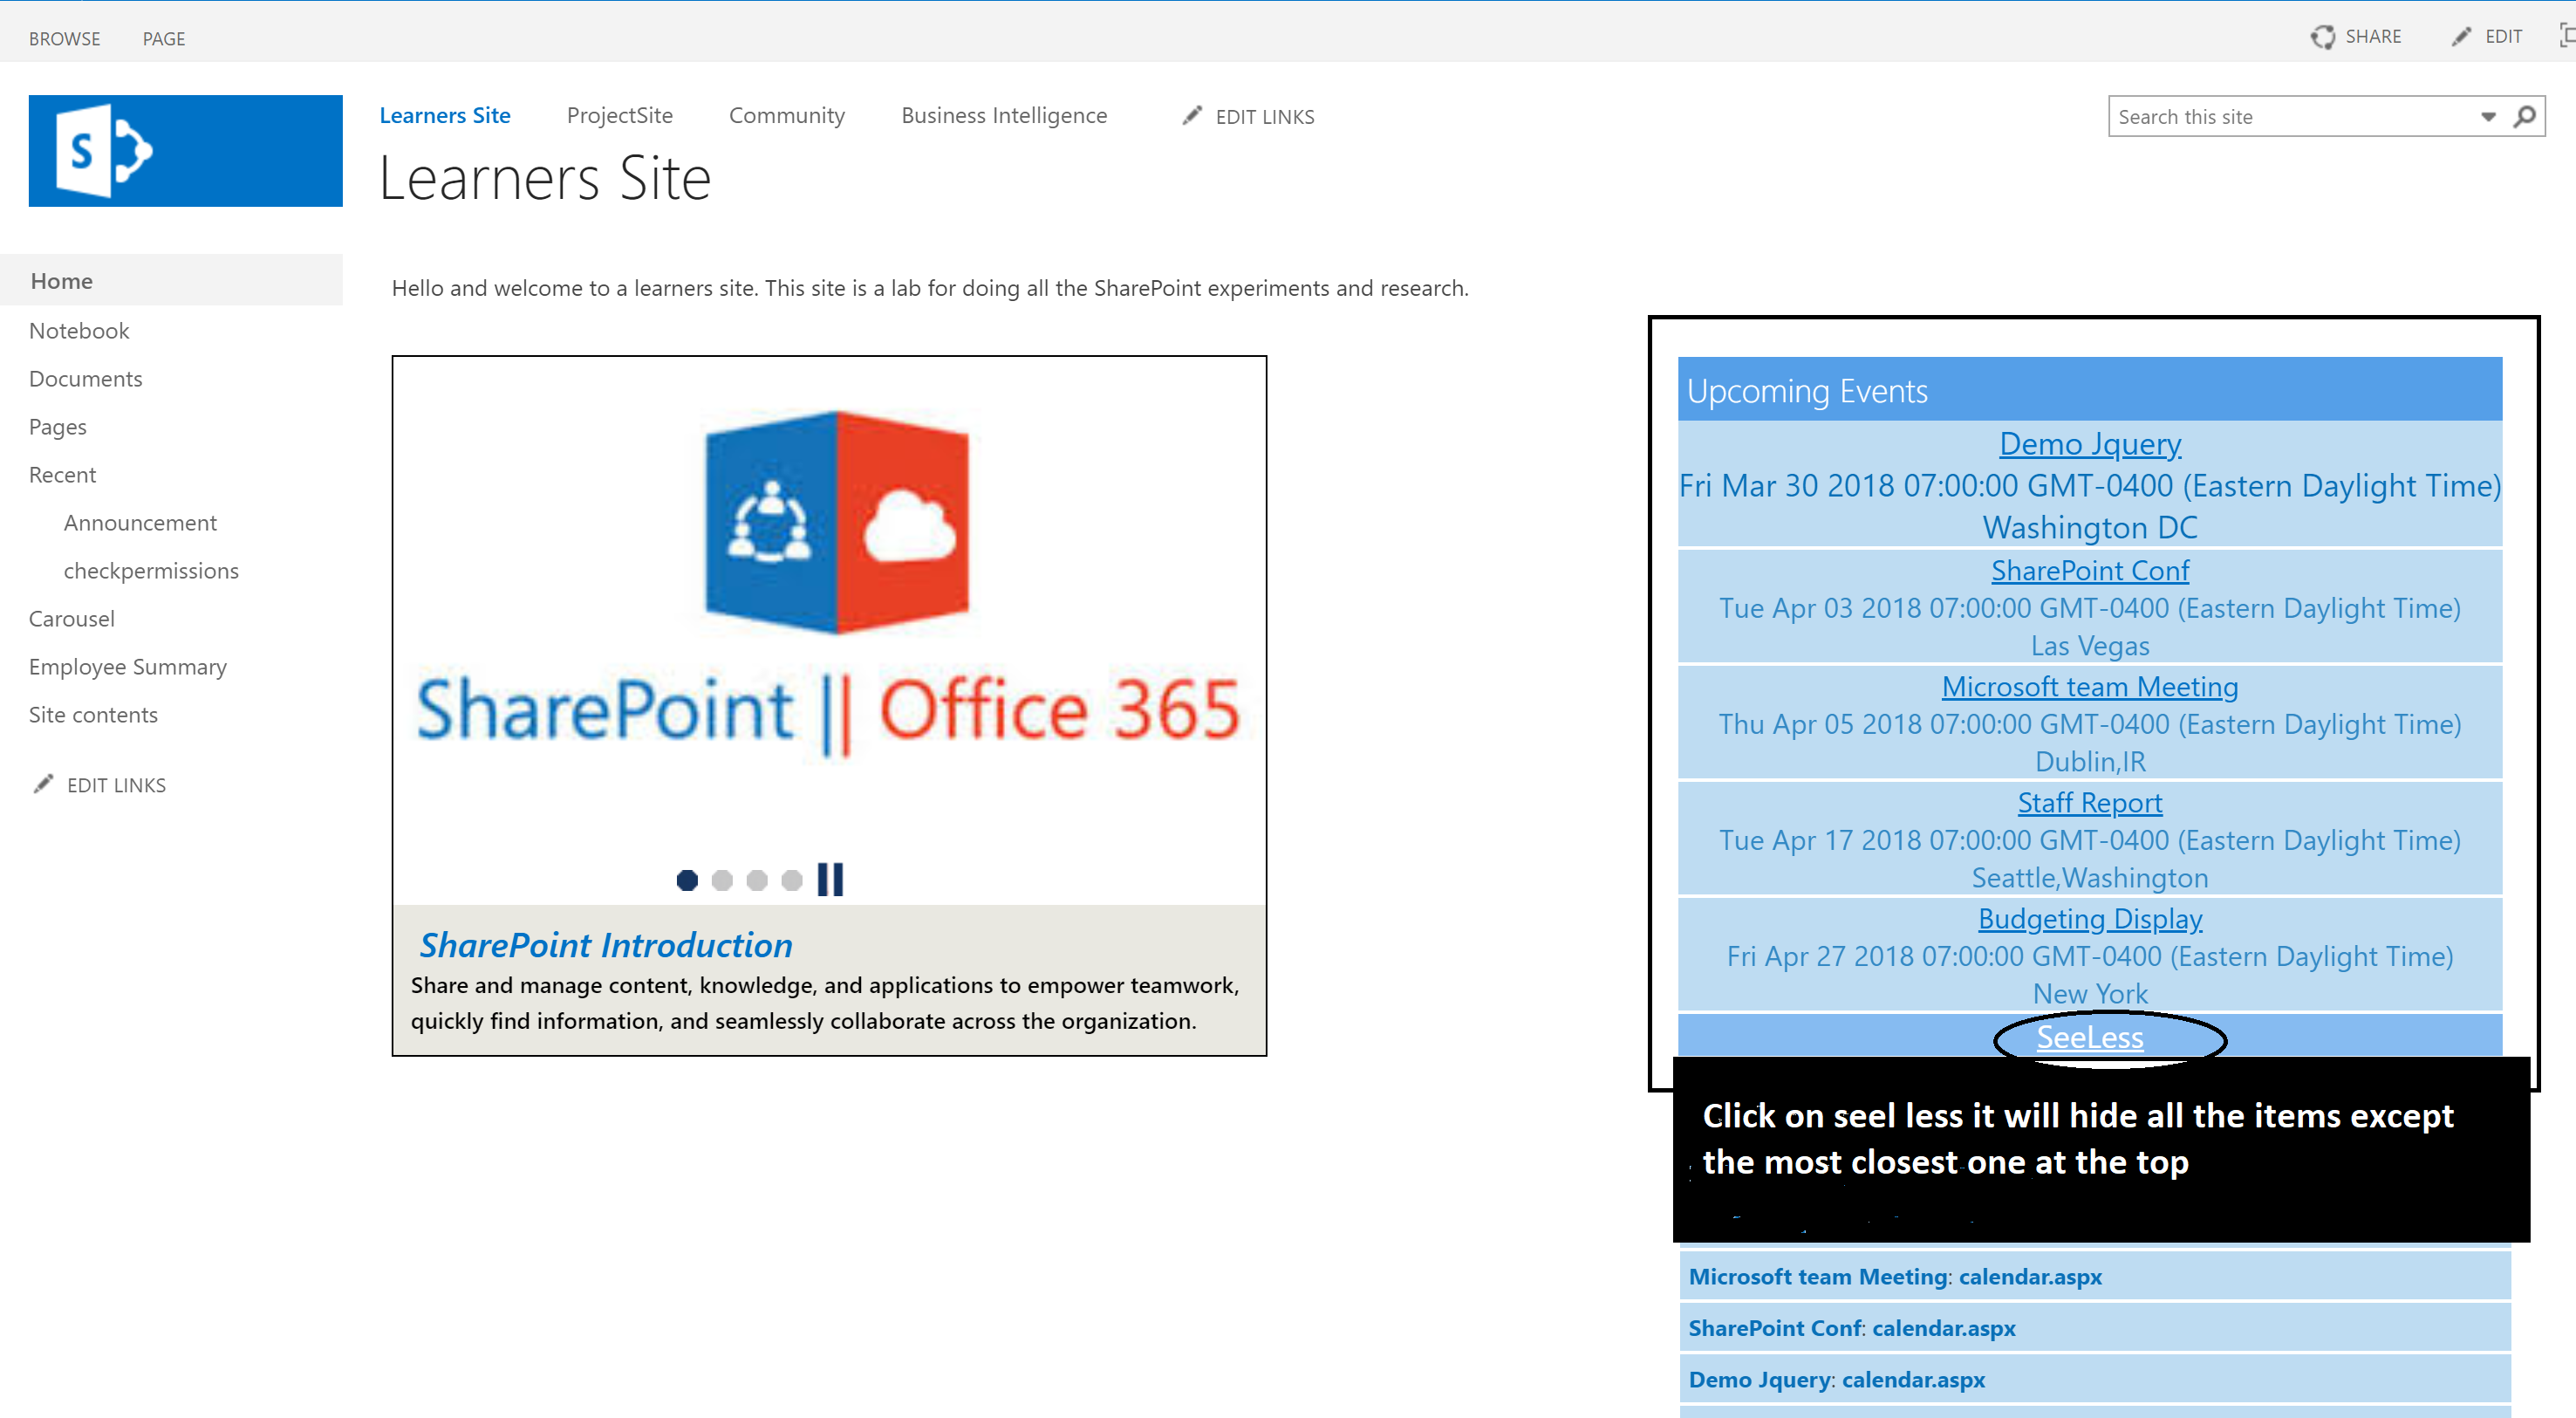 Display SharePoint Calendar events in home page using Jquery